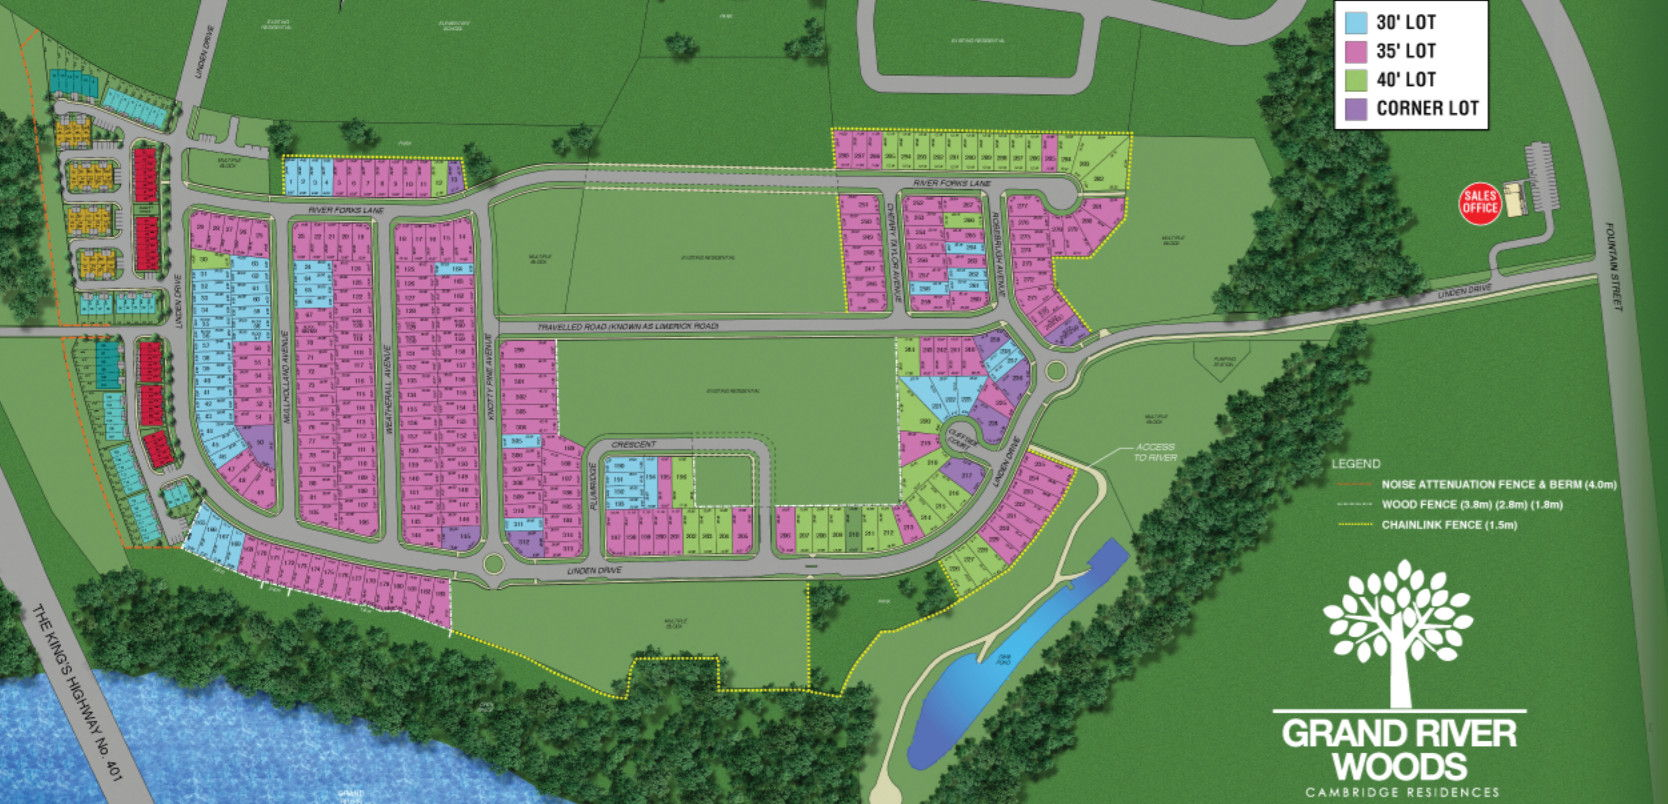 Site plan for Grand River Woods (Cr) in Cambridge, Ontario